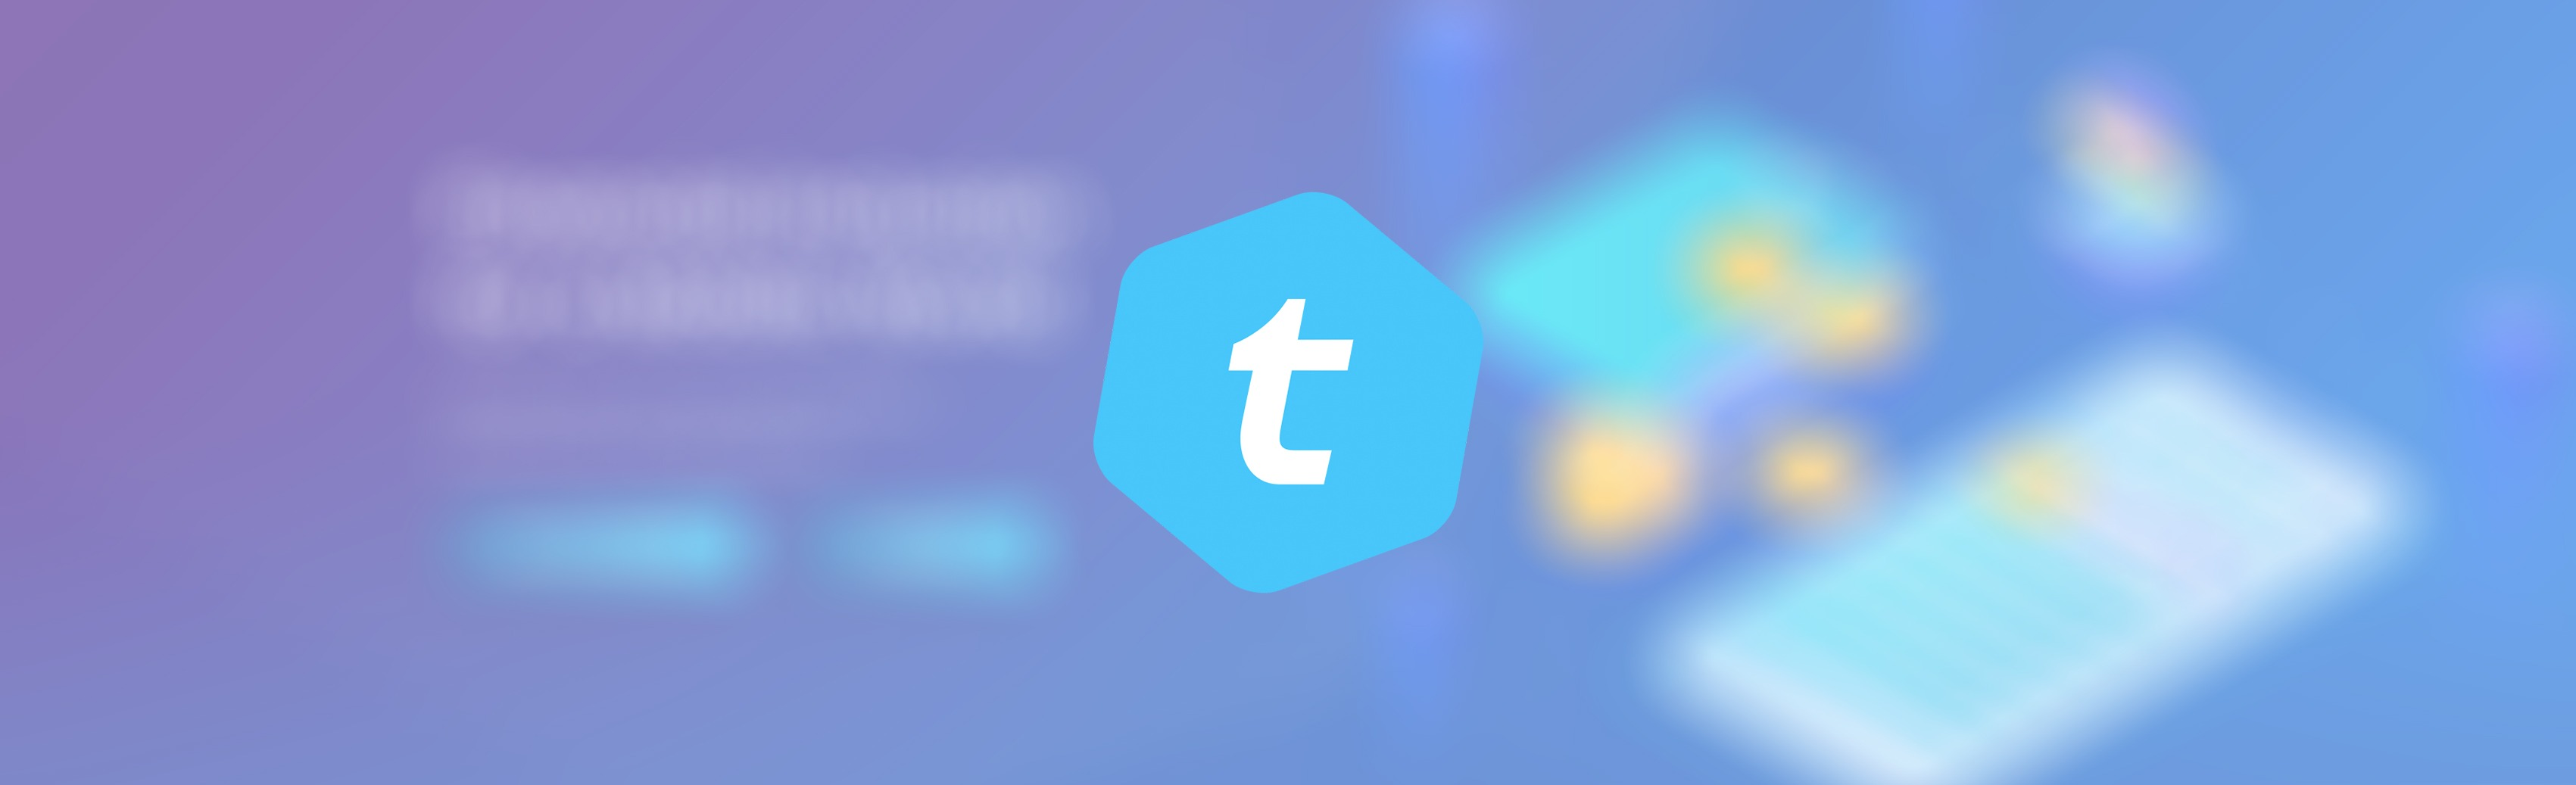 Telcoin new website 2019 srcset=